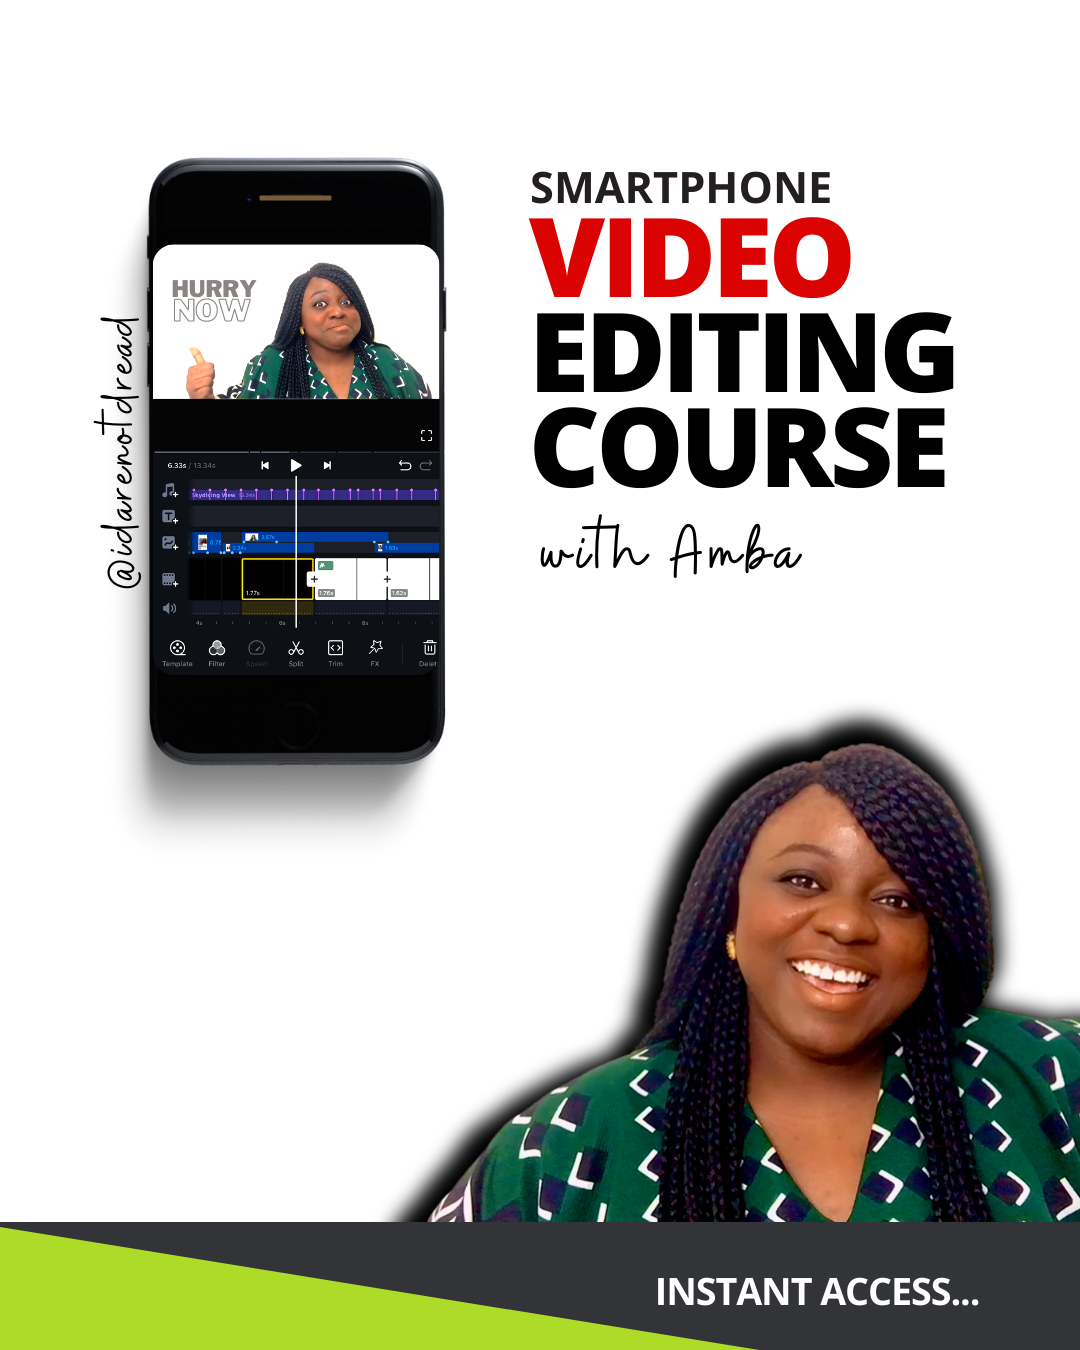 Smartphone video editing course